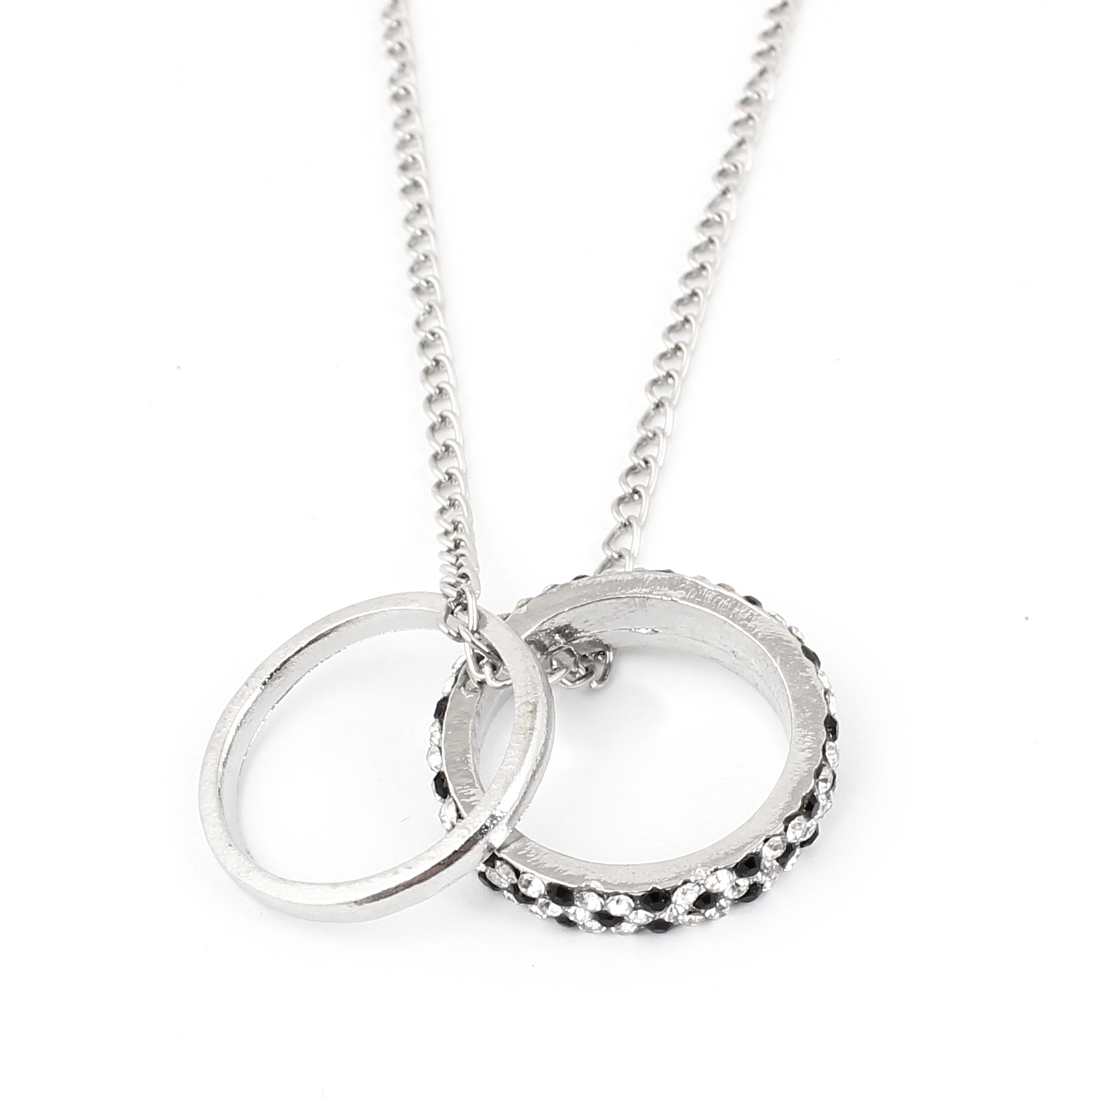 Black White Double Circles Pendant Necklace Sweater Chain Silver Tone